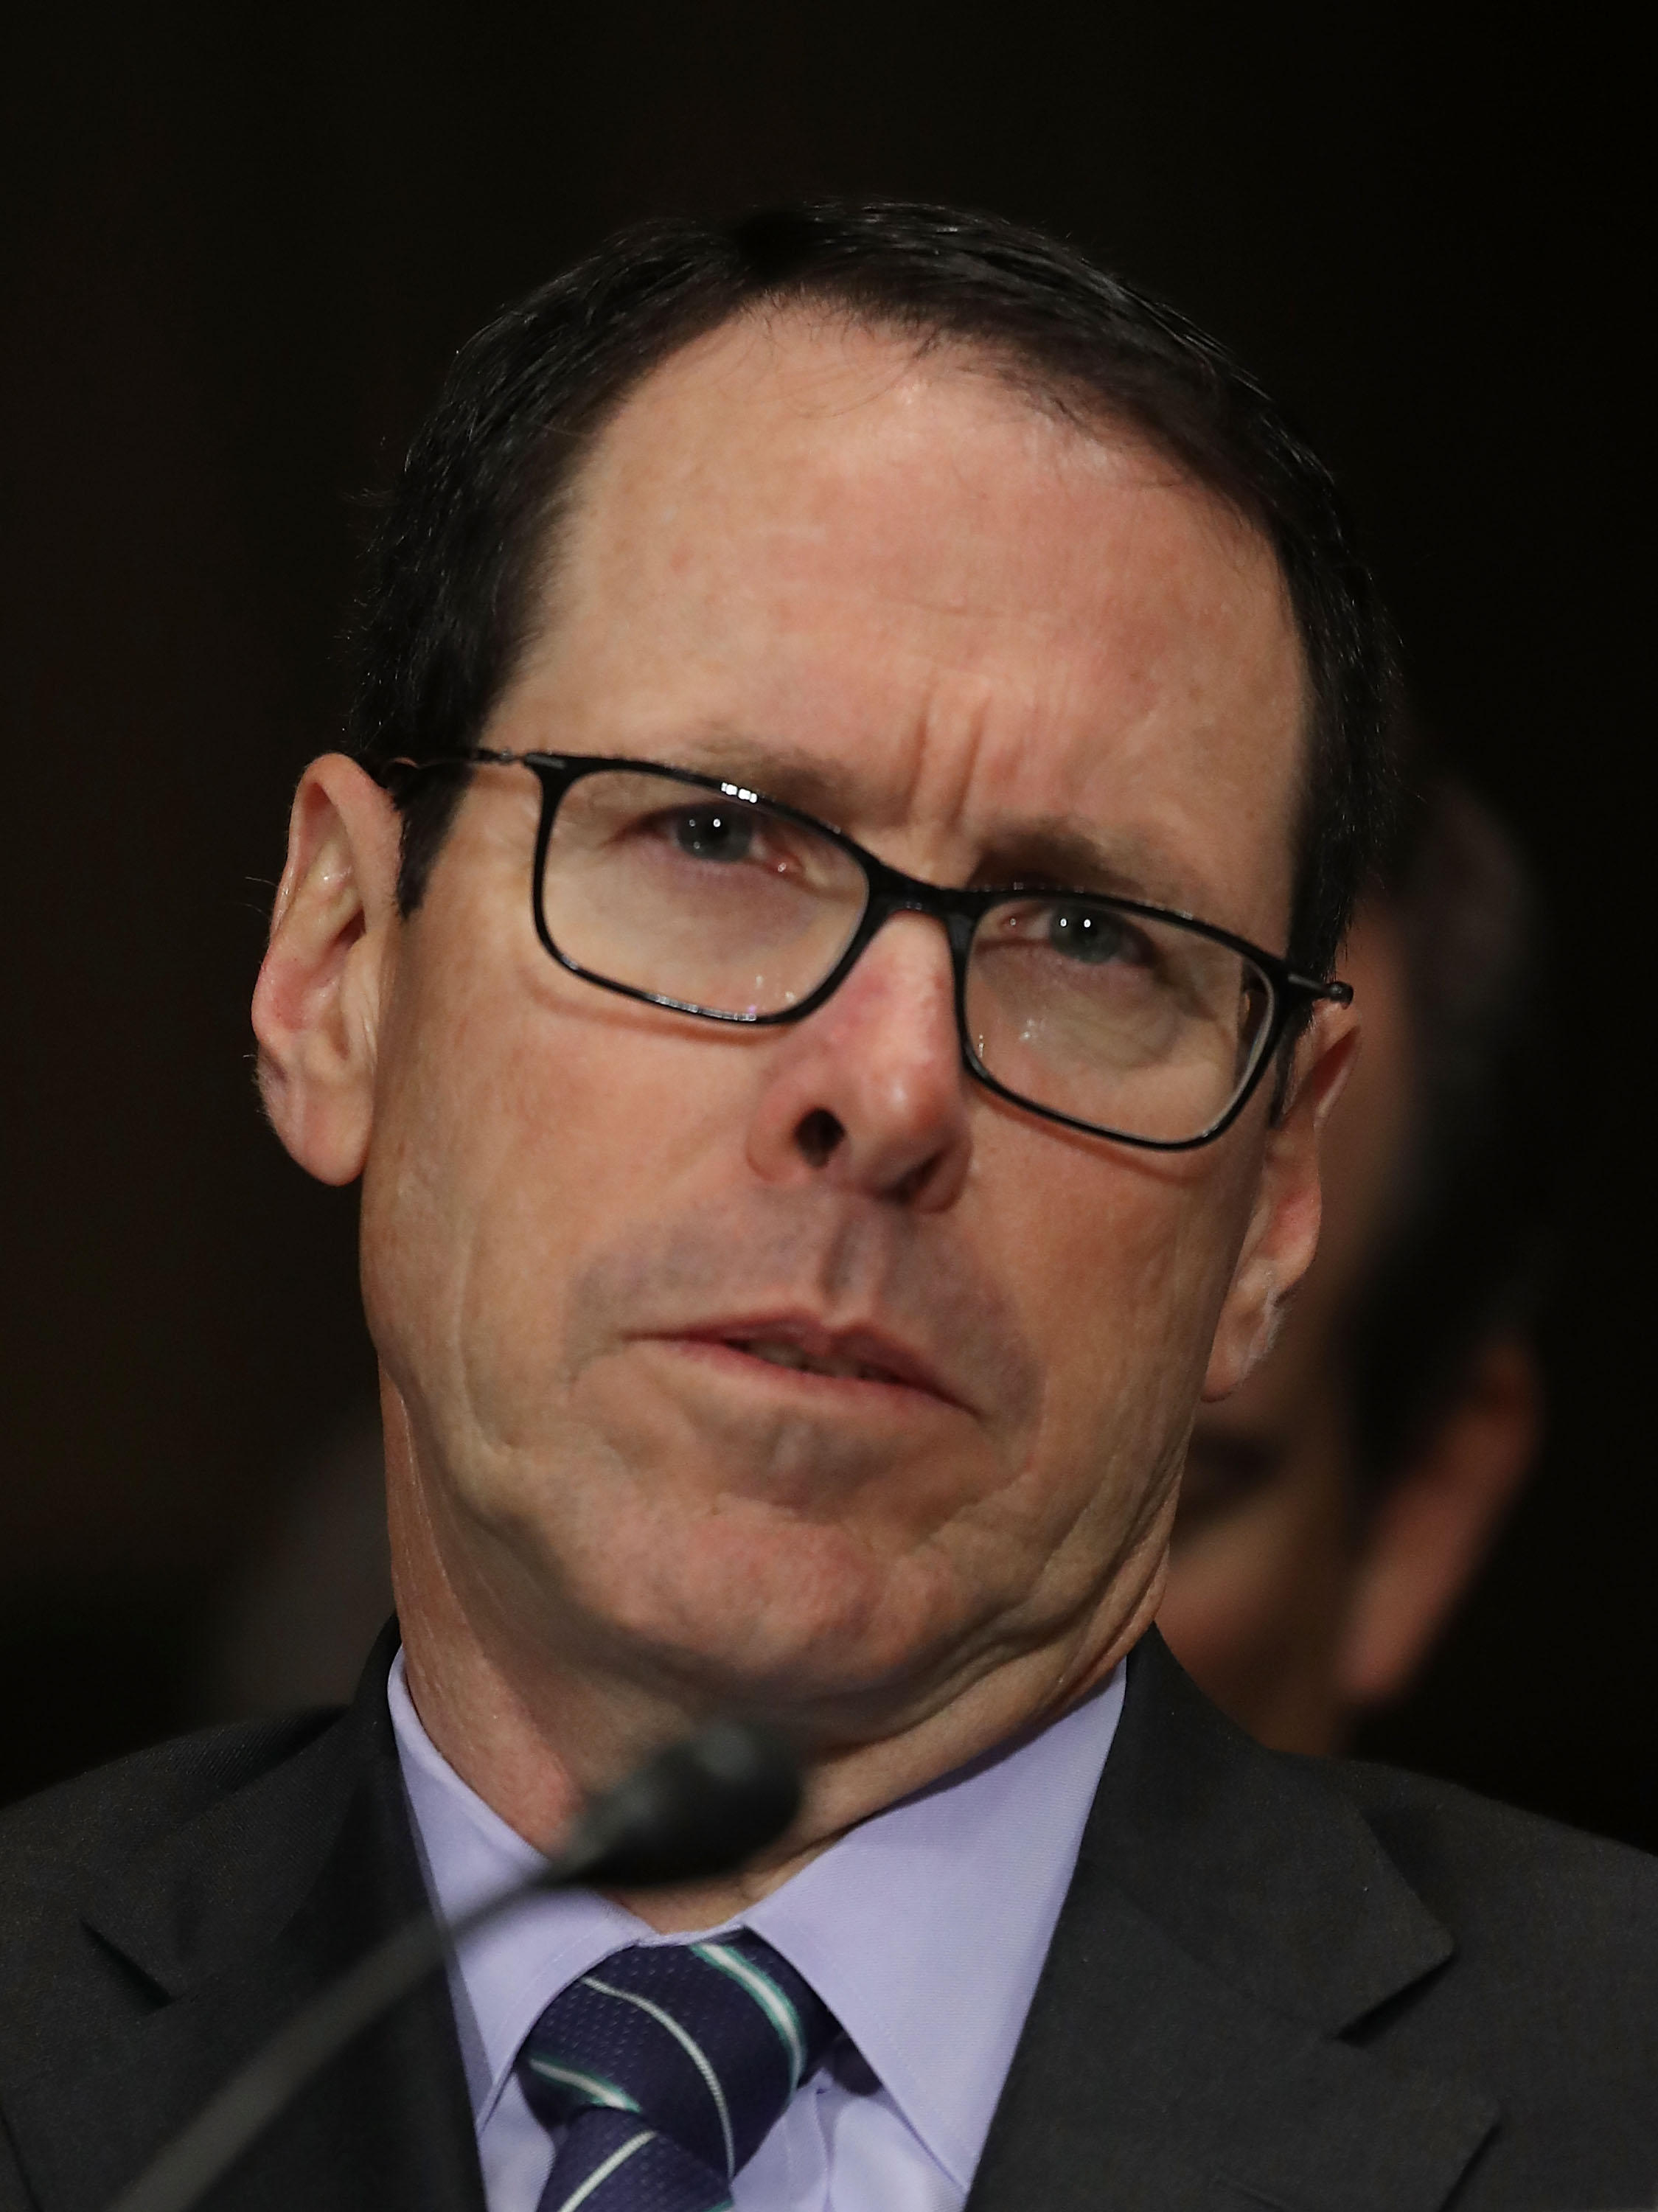 Randall Stephenson, CEO of AT&T, during a 2016 Senate Judiciary Subcommittee hearing. Stephenson was in federal court this week defending his company's merger with Time Warner.